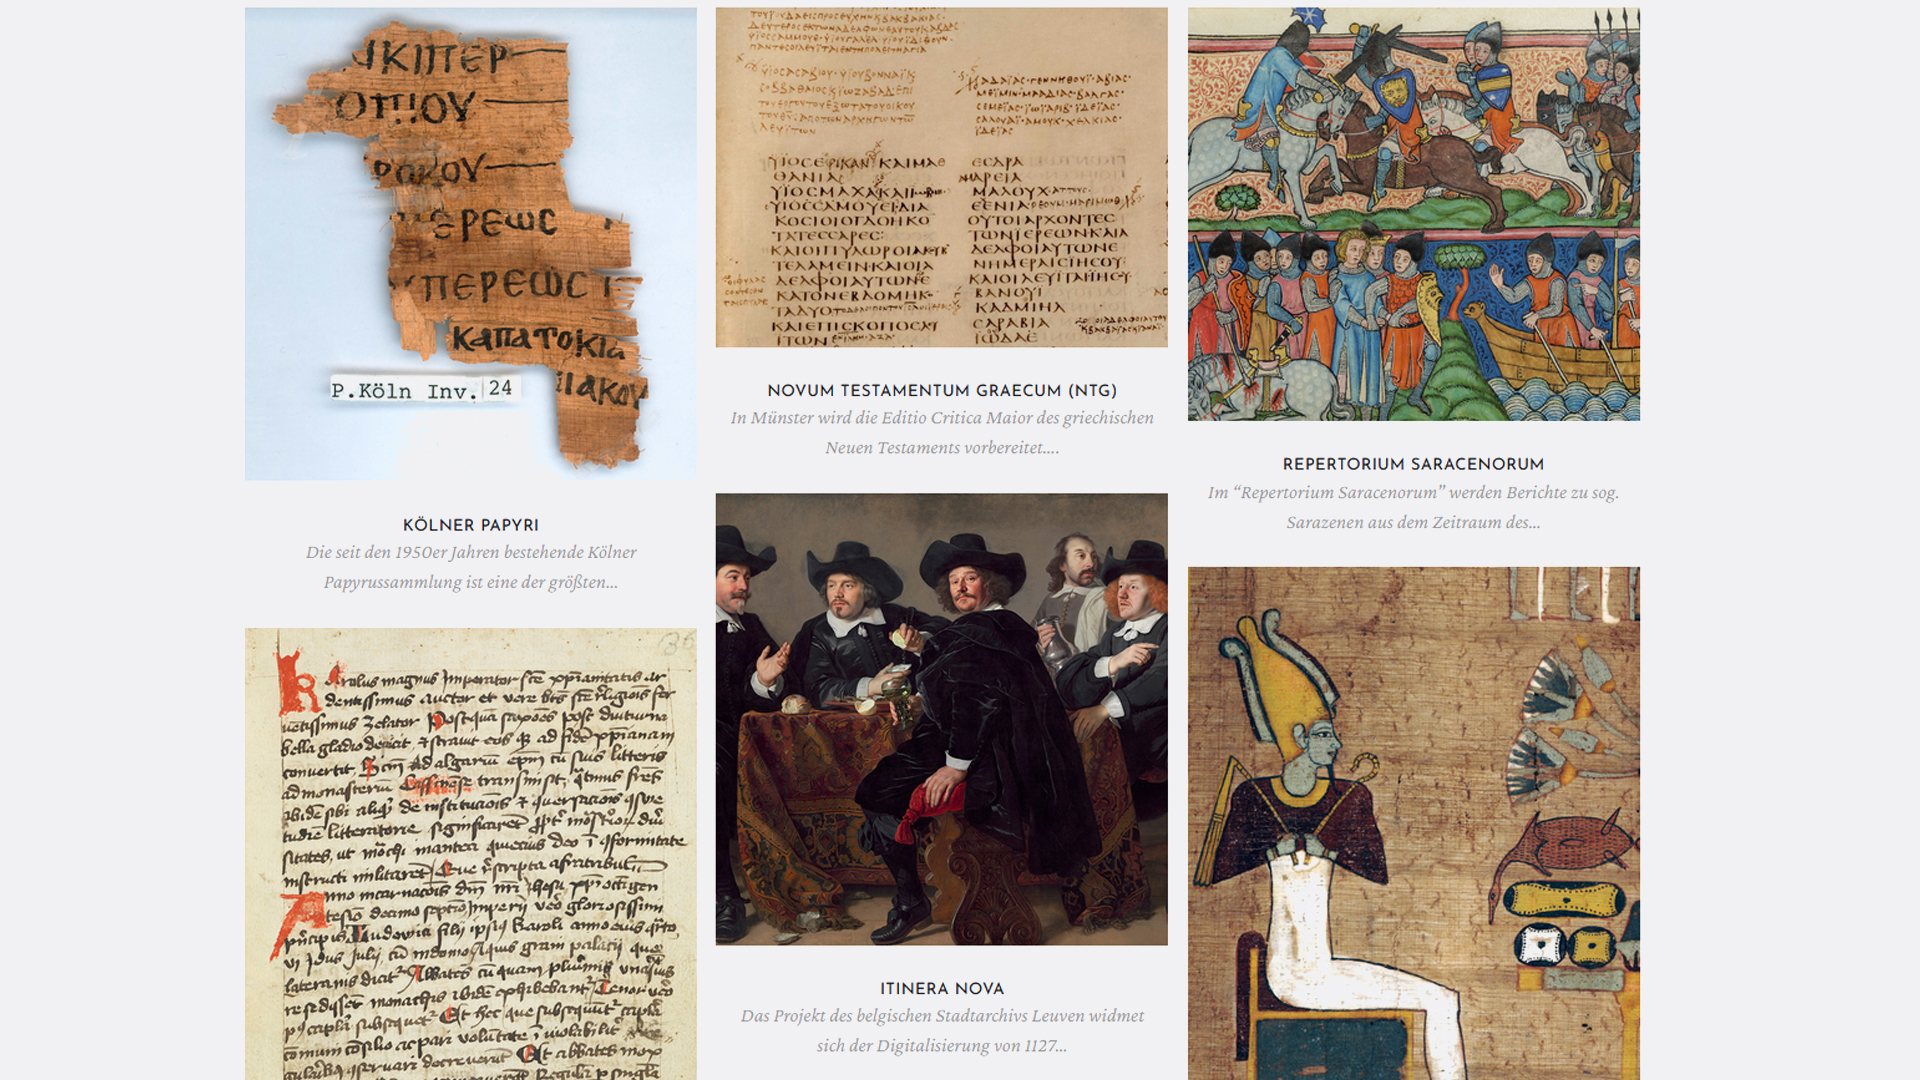 screenshot of the CCeH project portfolio, showing manuscripts, papyri and paintings